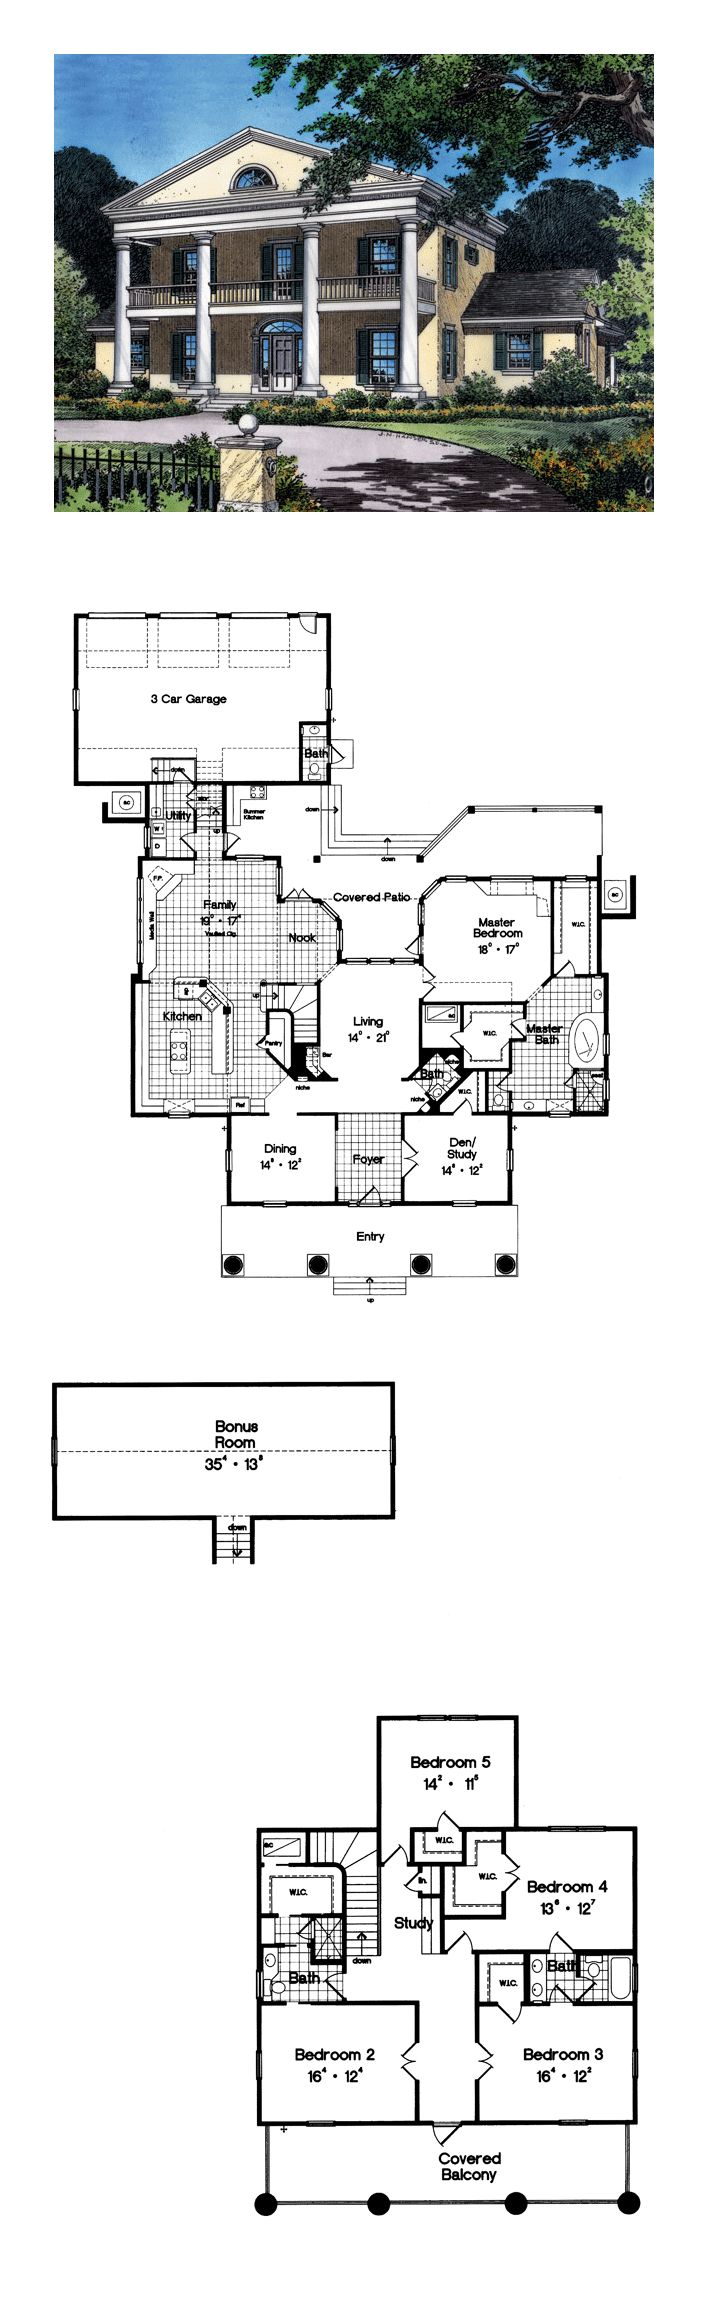 cool residential house plans. Historic Style COOL House Plan ID  chp 31491 Total Living Area 5464 16 best Home Plans images on Pinterest Cool house plans